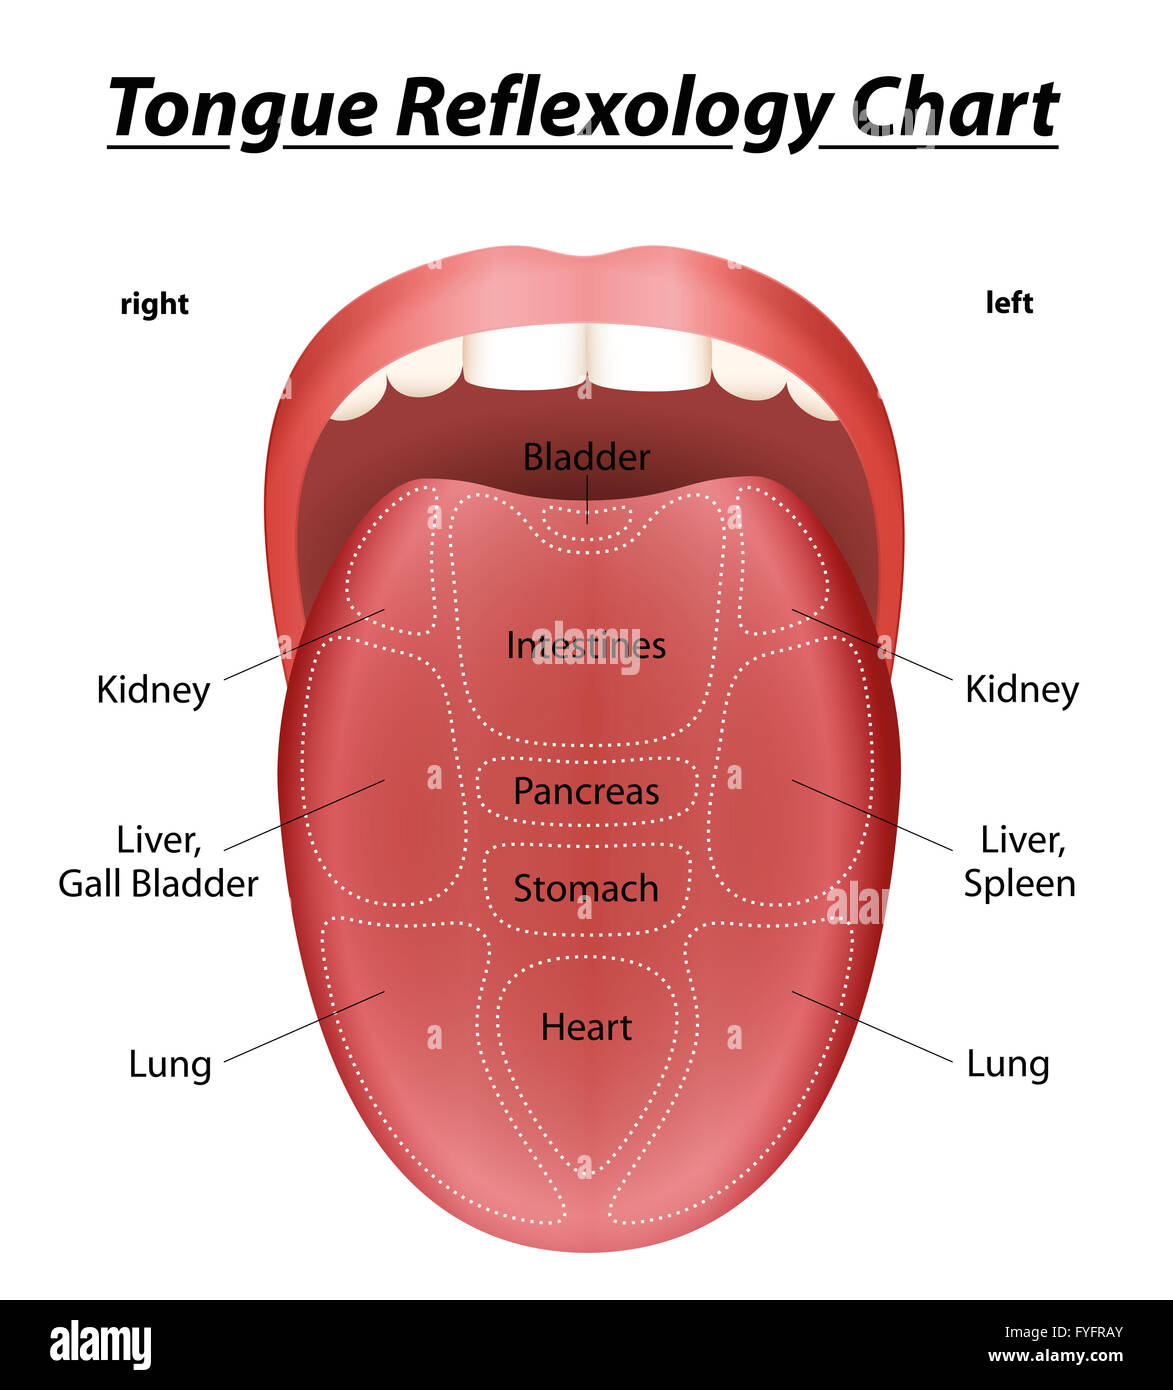 hight resolution of tongue reflexology chart with description of the corresponding internal organs illustration on white background